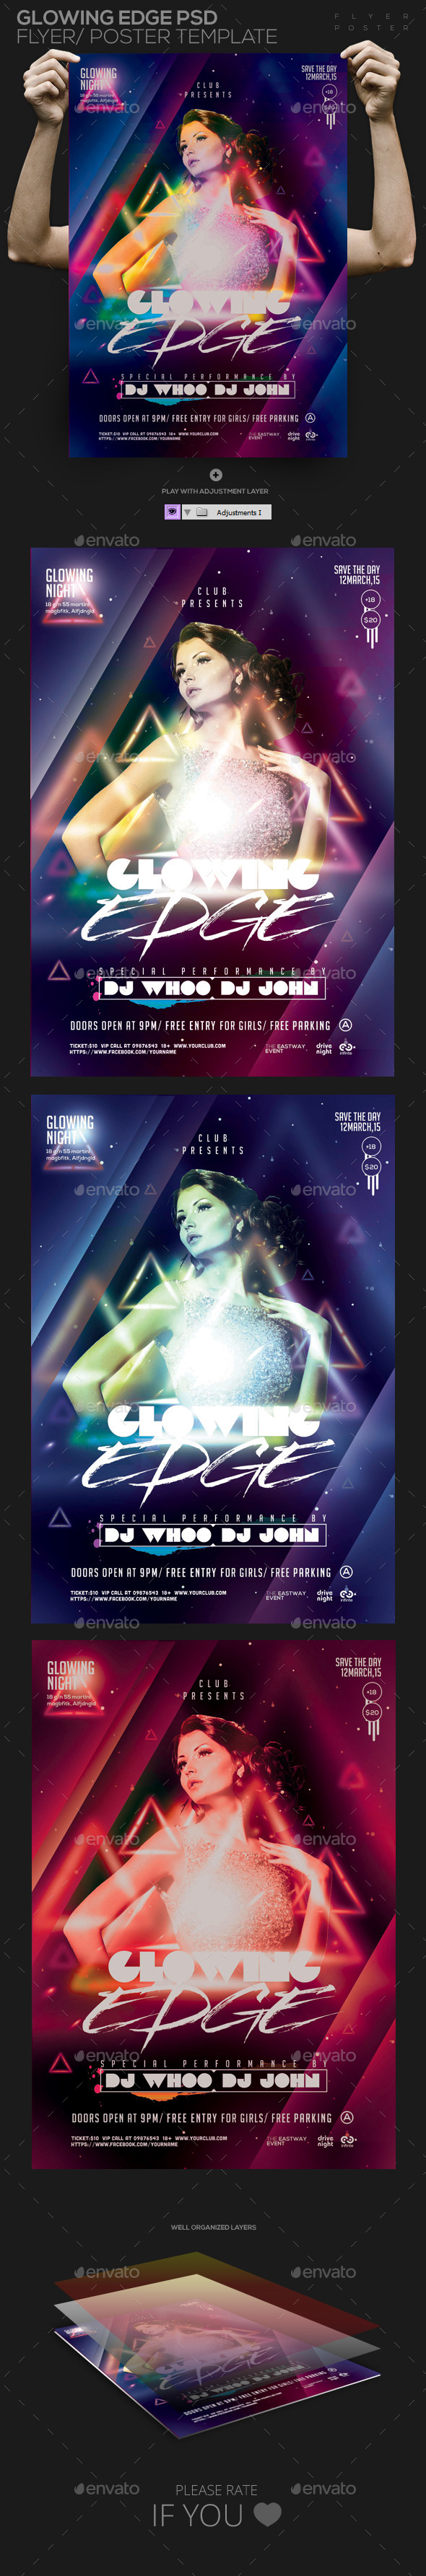 GraphicRiver Glowing Edge PSD Flyer Poster Template 11414170